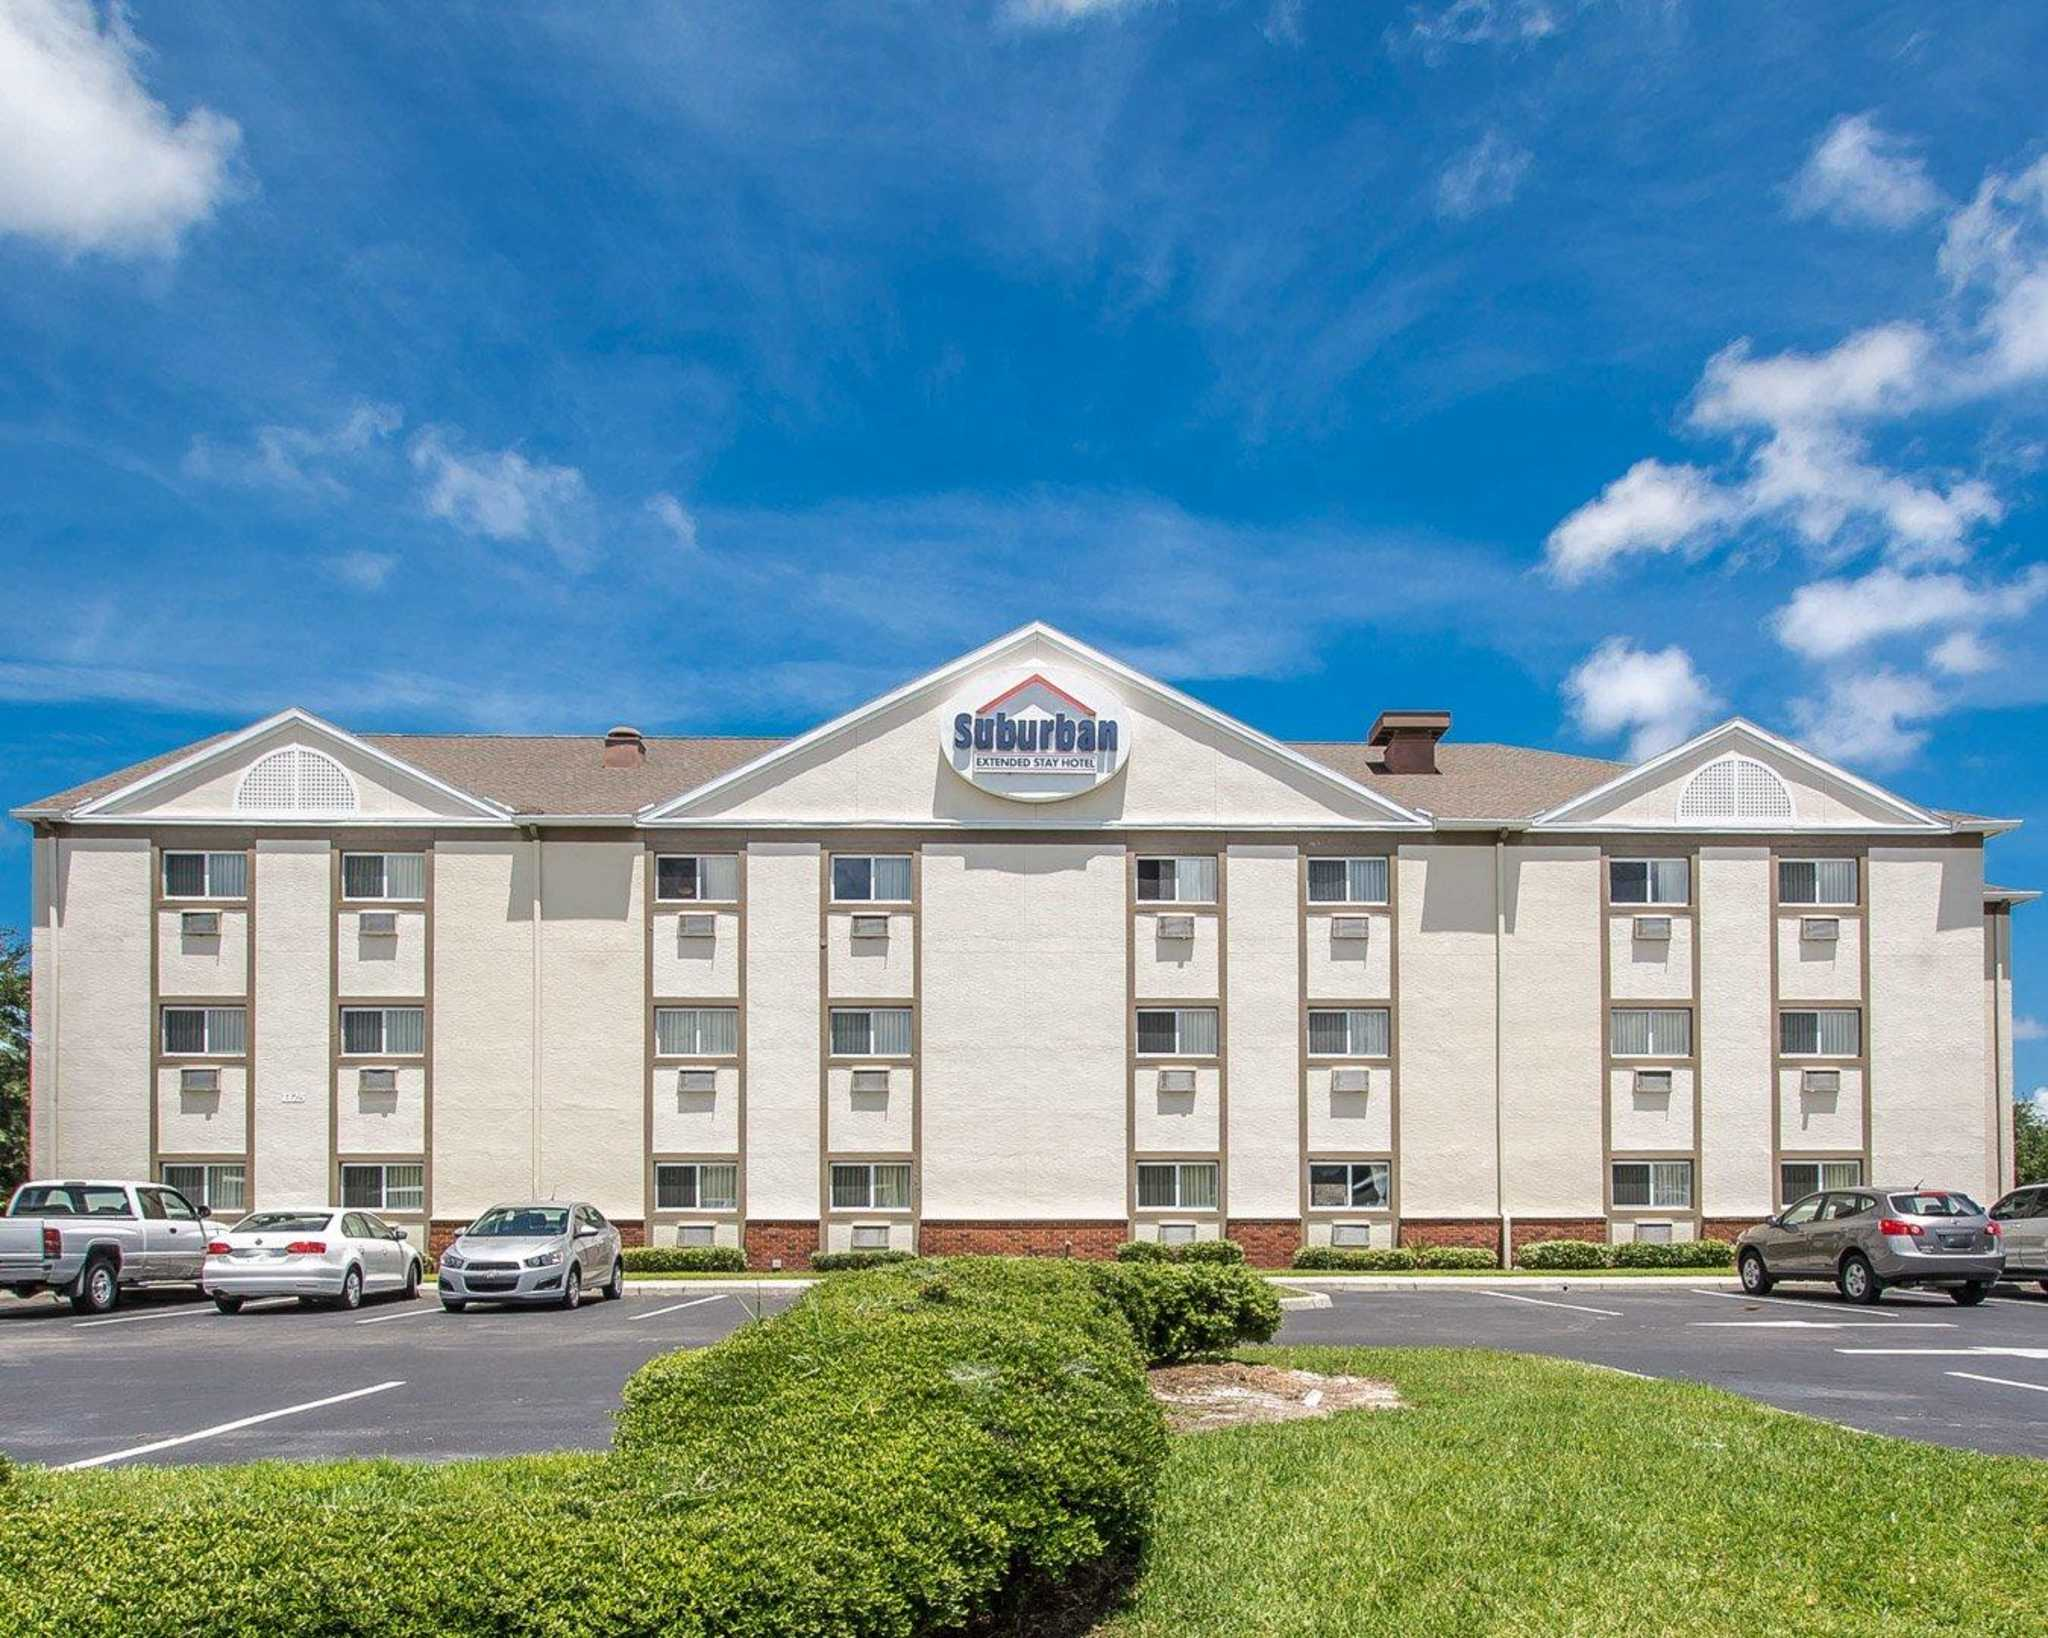 Suburban Extended Stay Hotel image 1